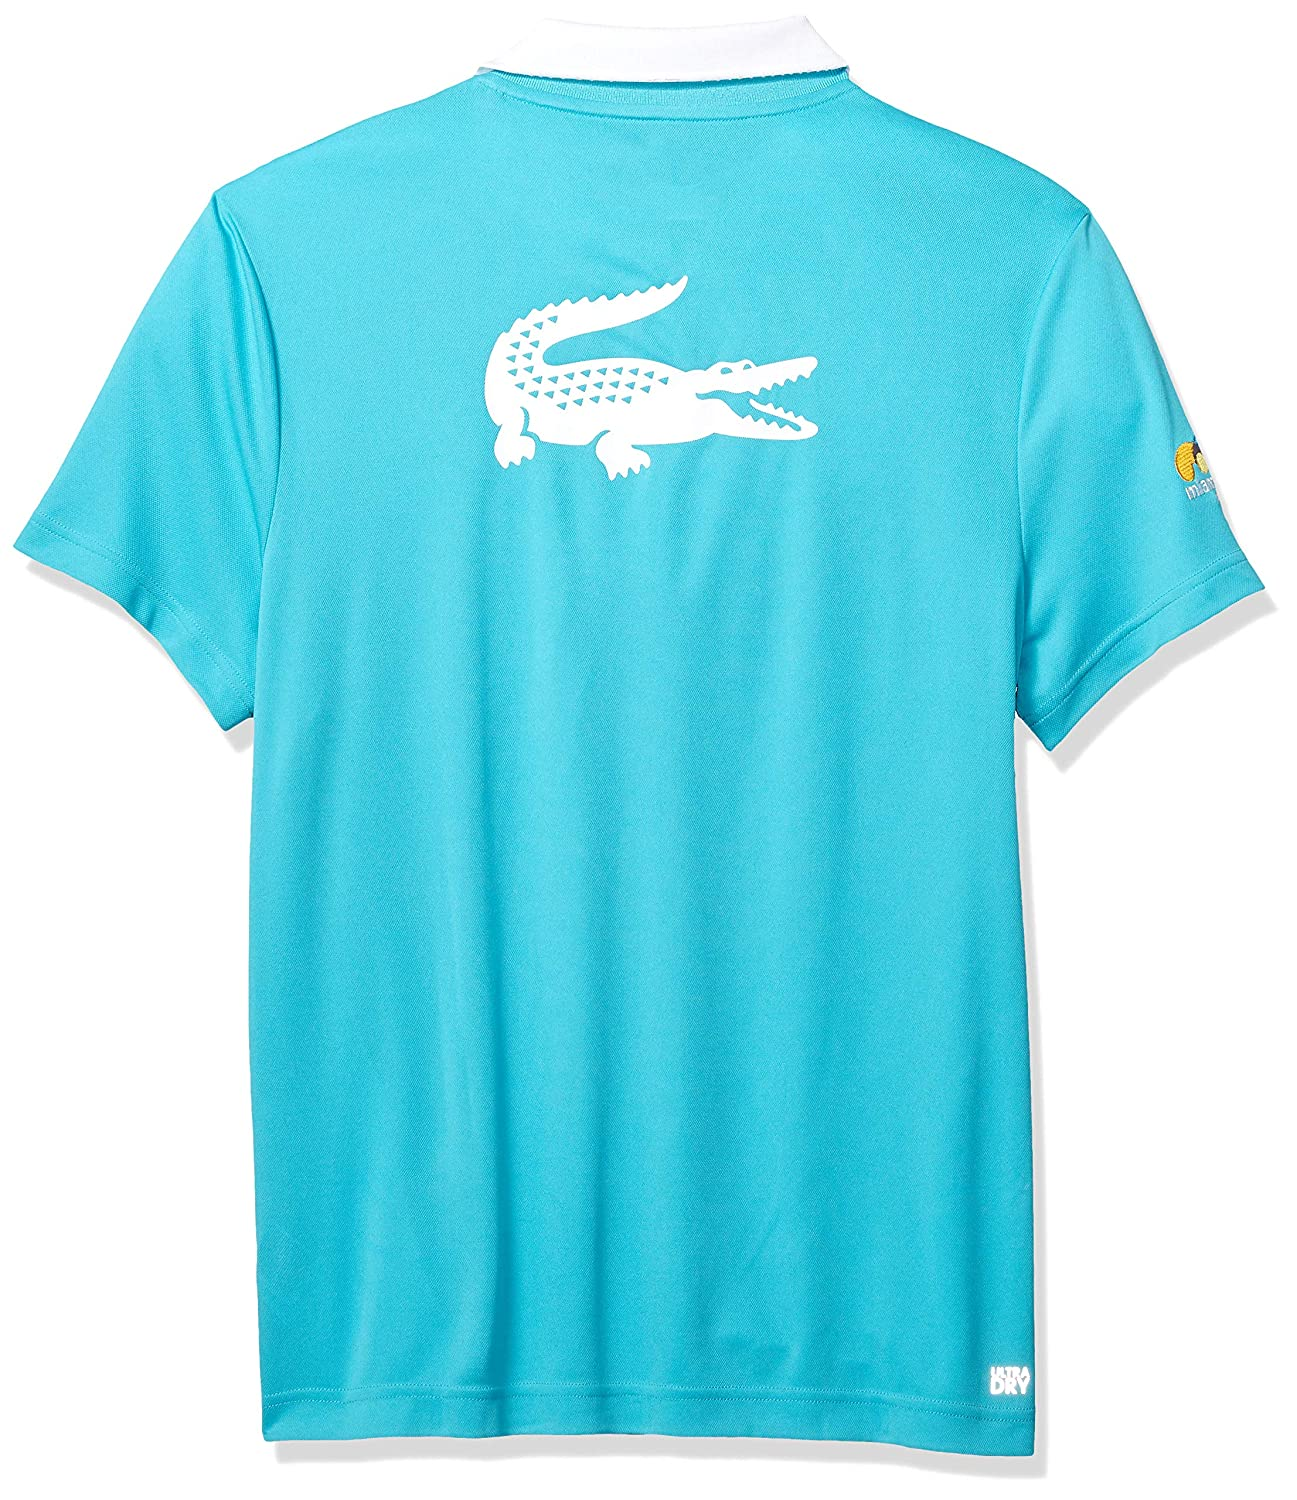 low priced 32548 1f5d9 Lacoste Men s Sport Miami Open Edition Piqué Back Croc Polo at Amazon Men s  Clothing store